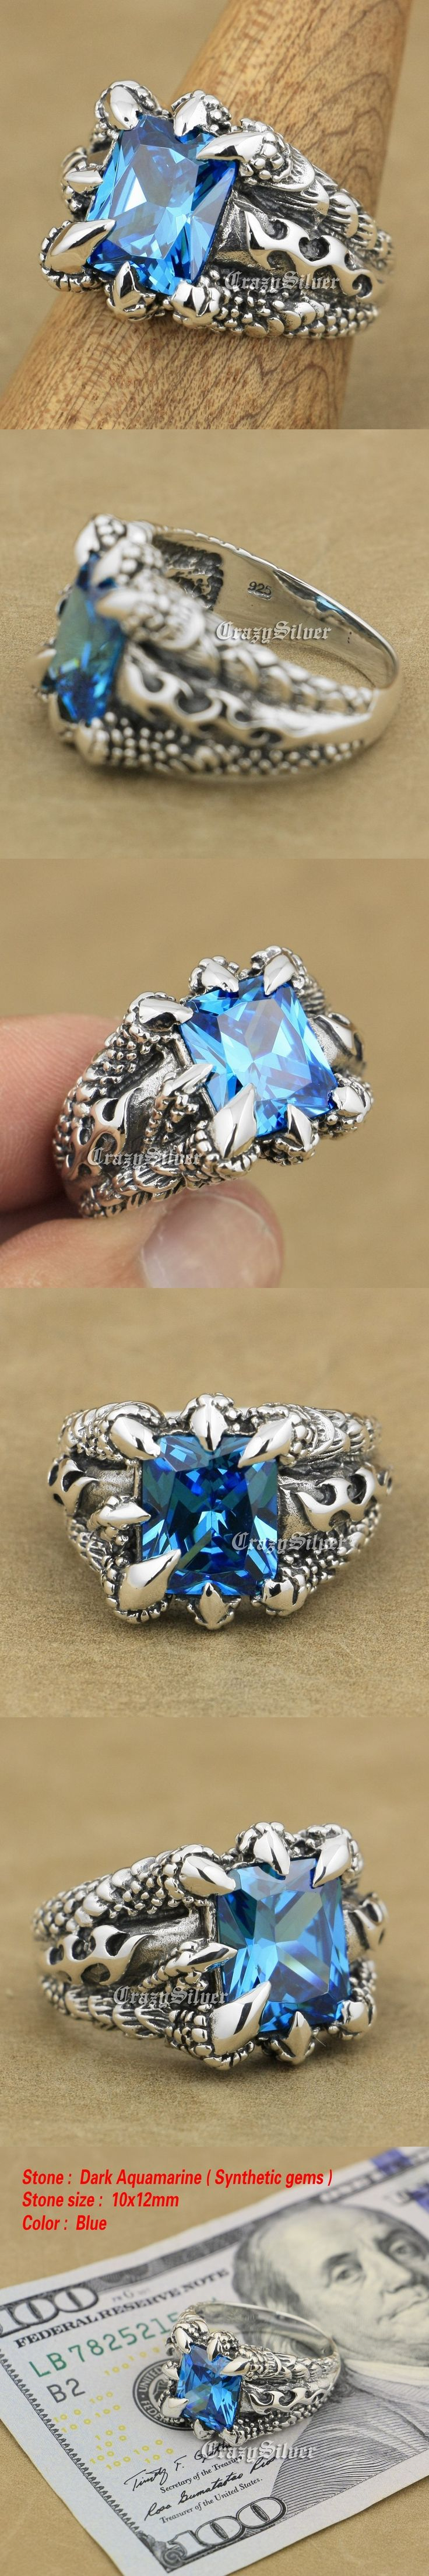 LINSION Huge Blue CZ 925 Sterling Silver Dragon Claw Mens Boys Biker Rock Punk Ring 8T102 USA